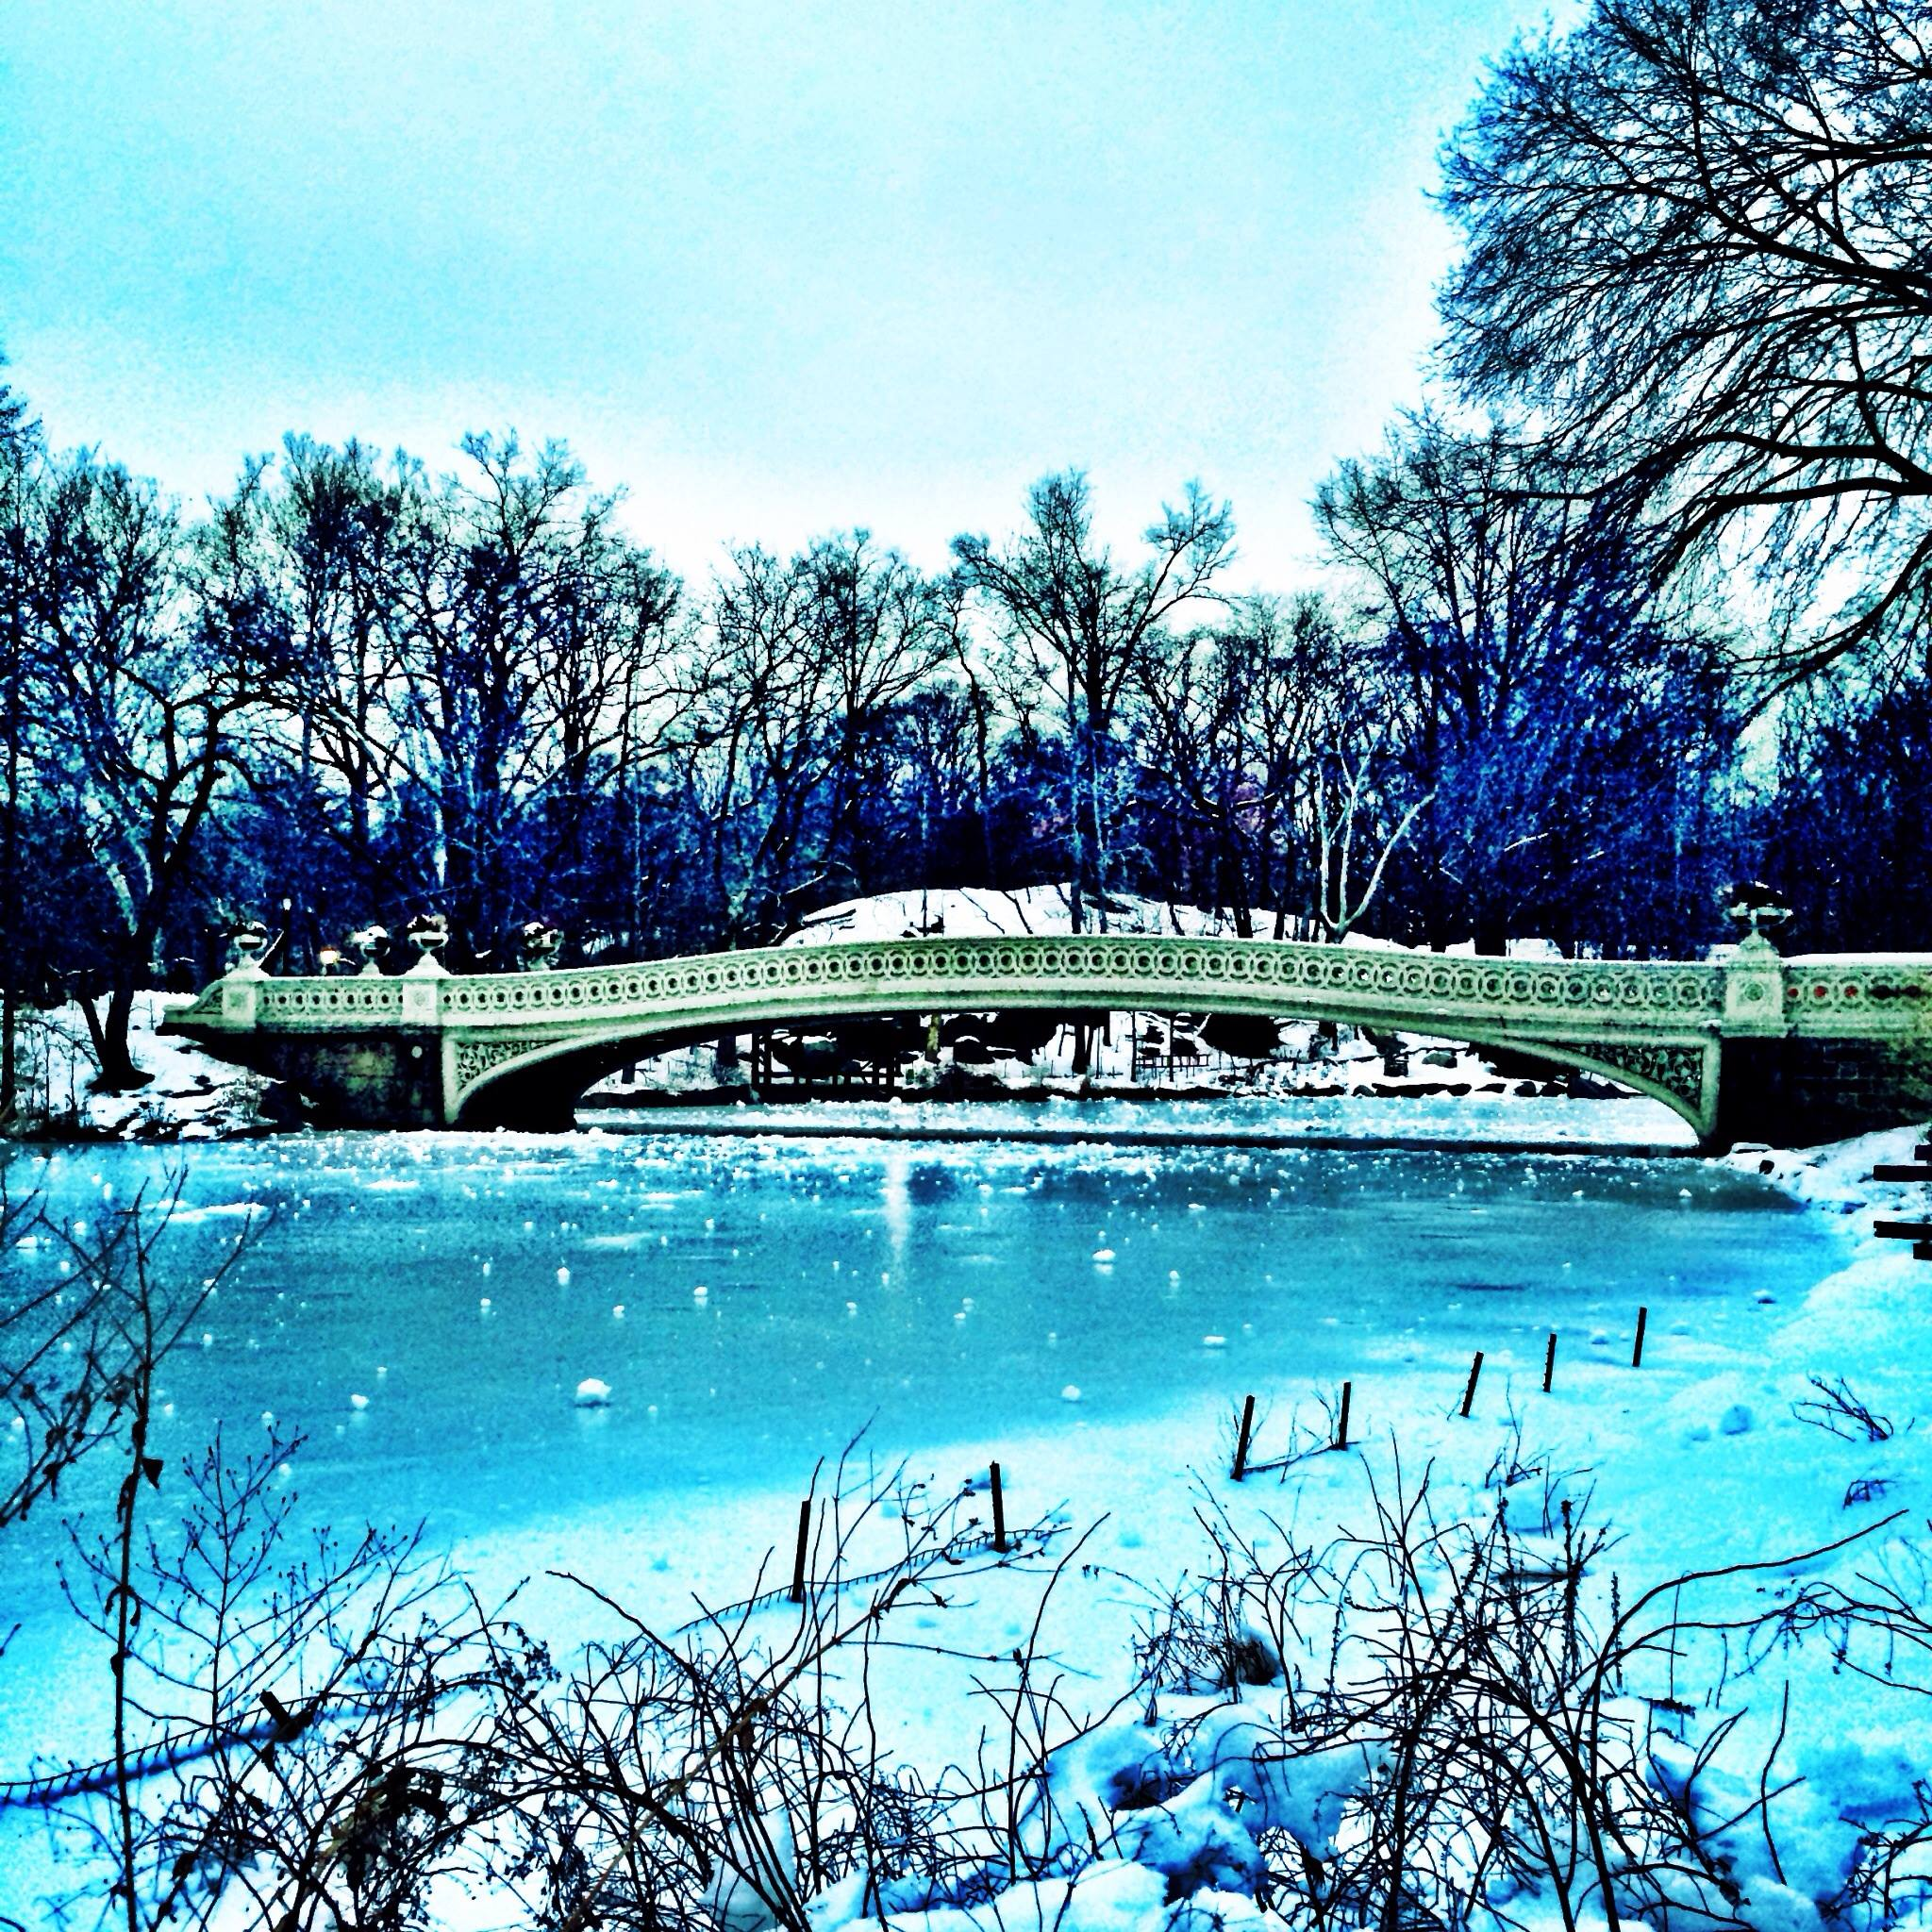 Central Park's Bow Bridge in winter